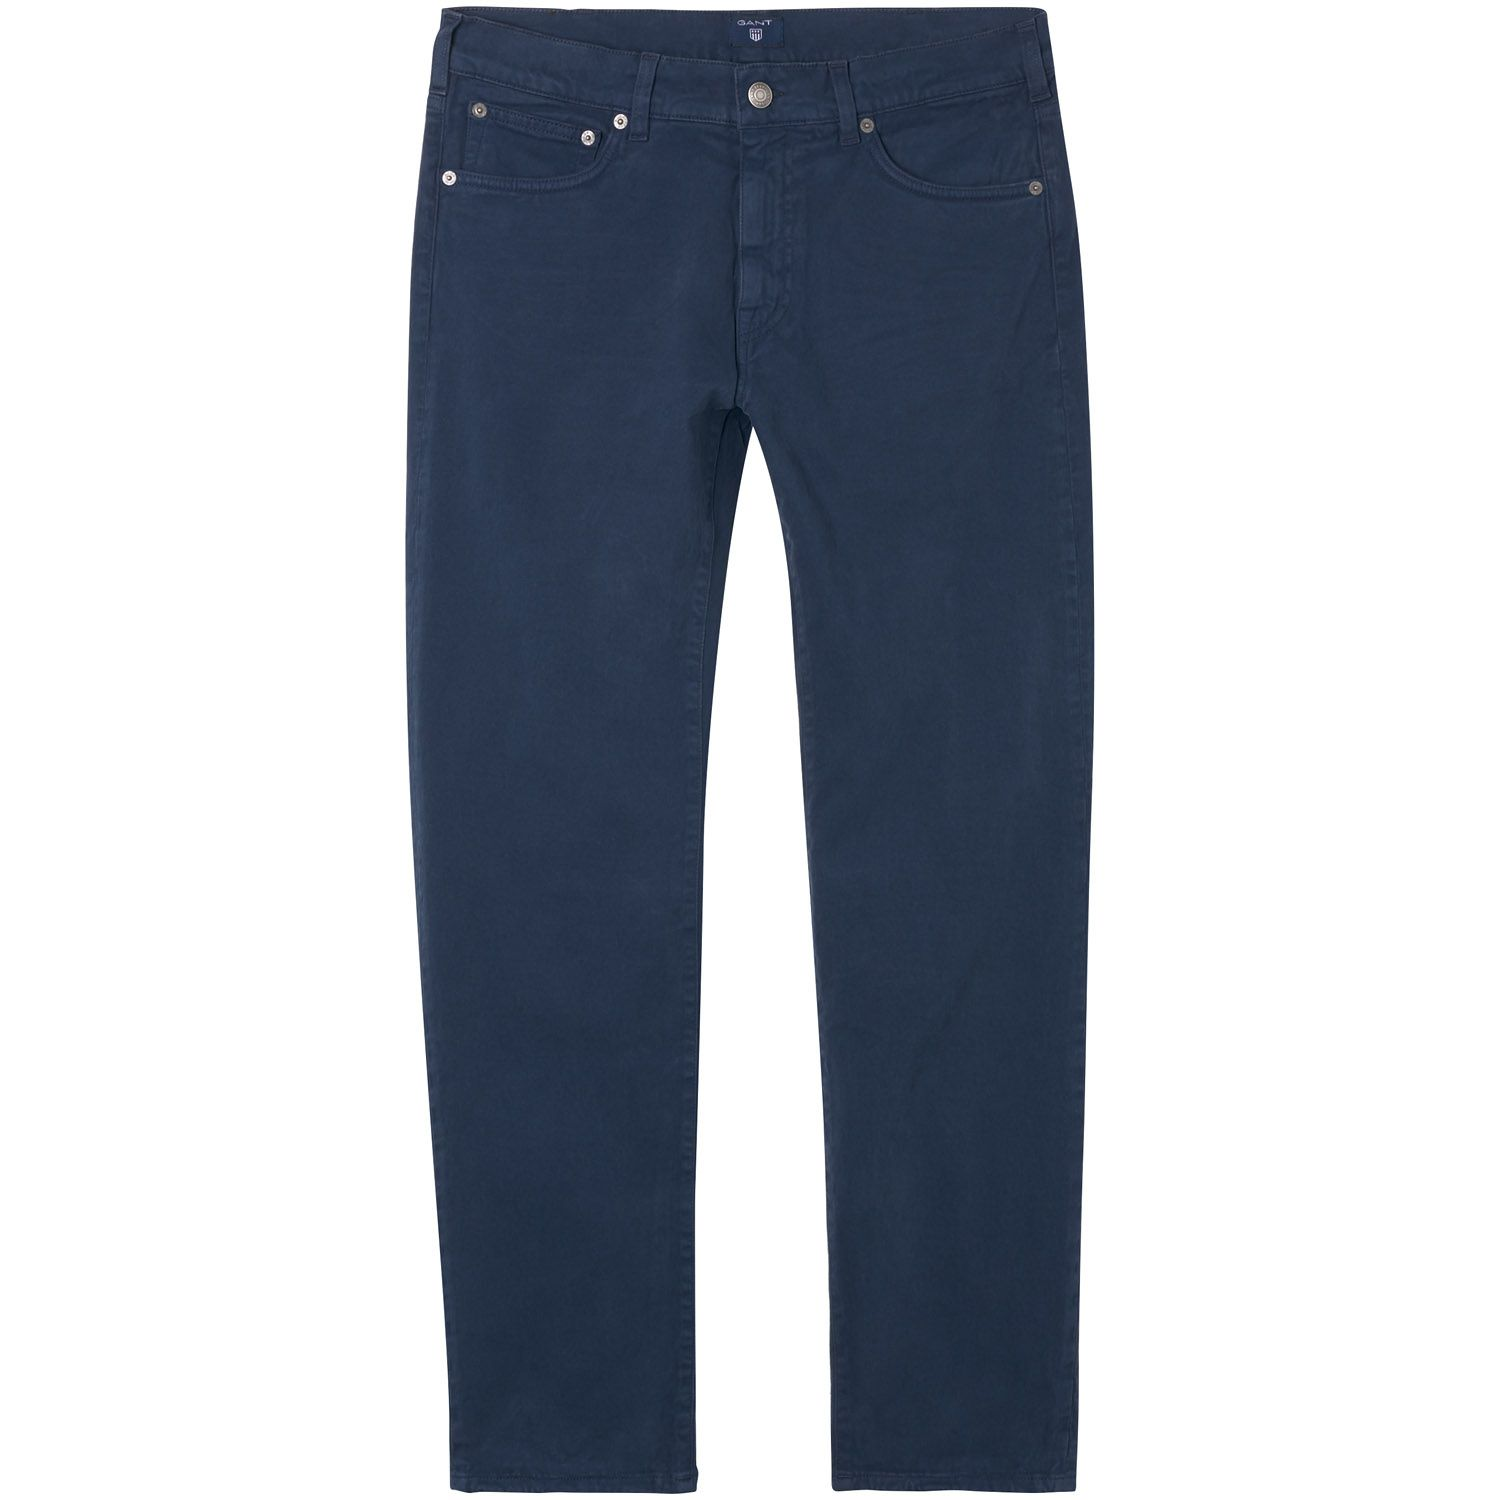 GANT Marine Regular Fit Moleskin Jeans